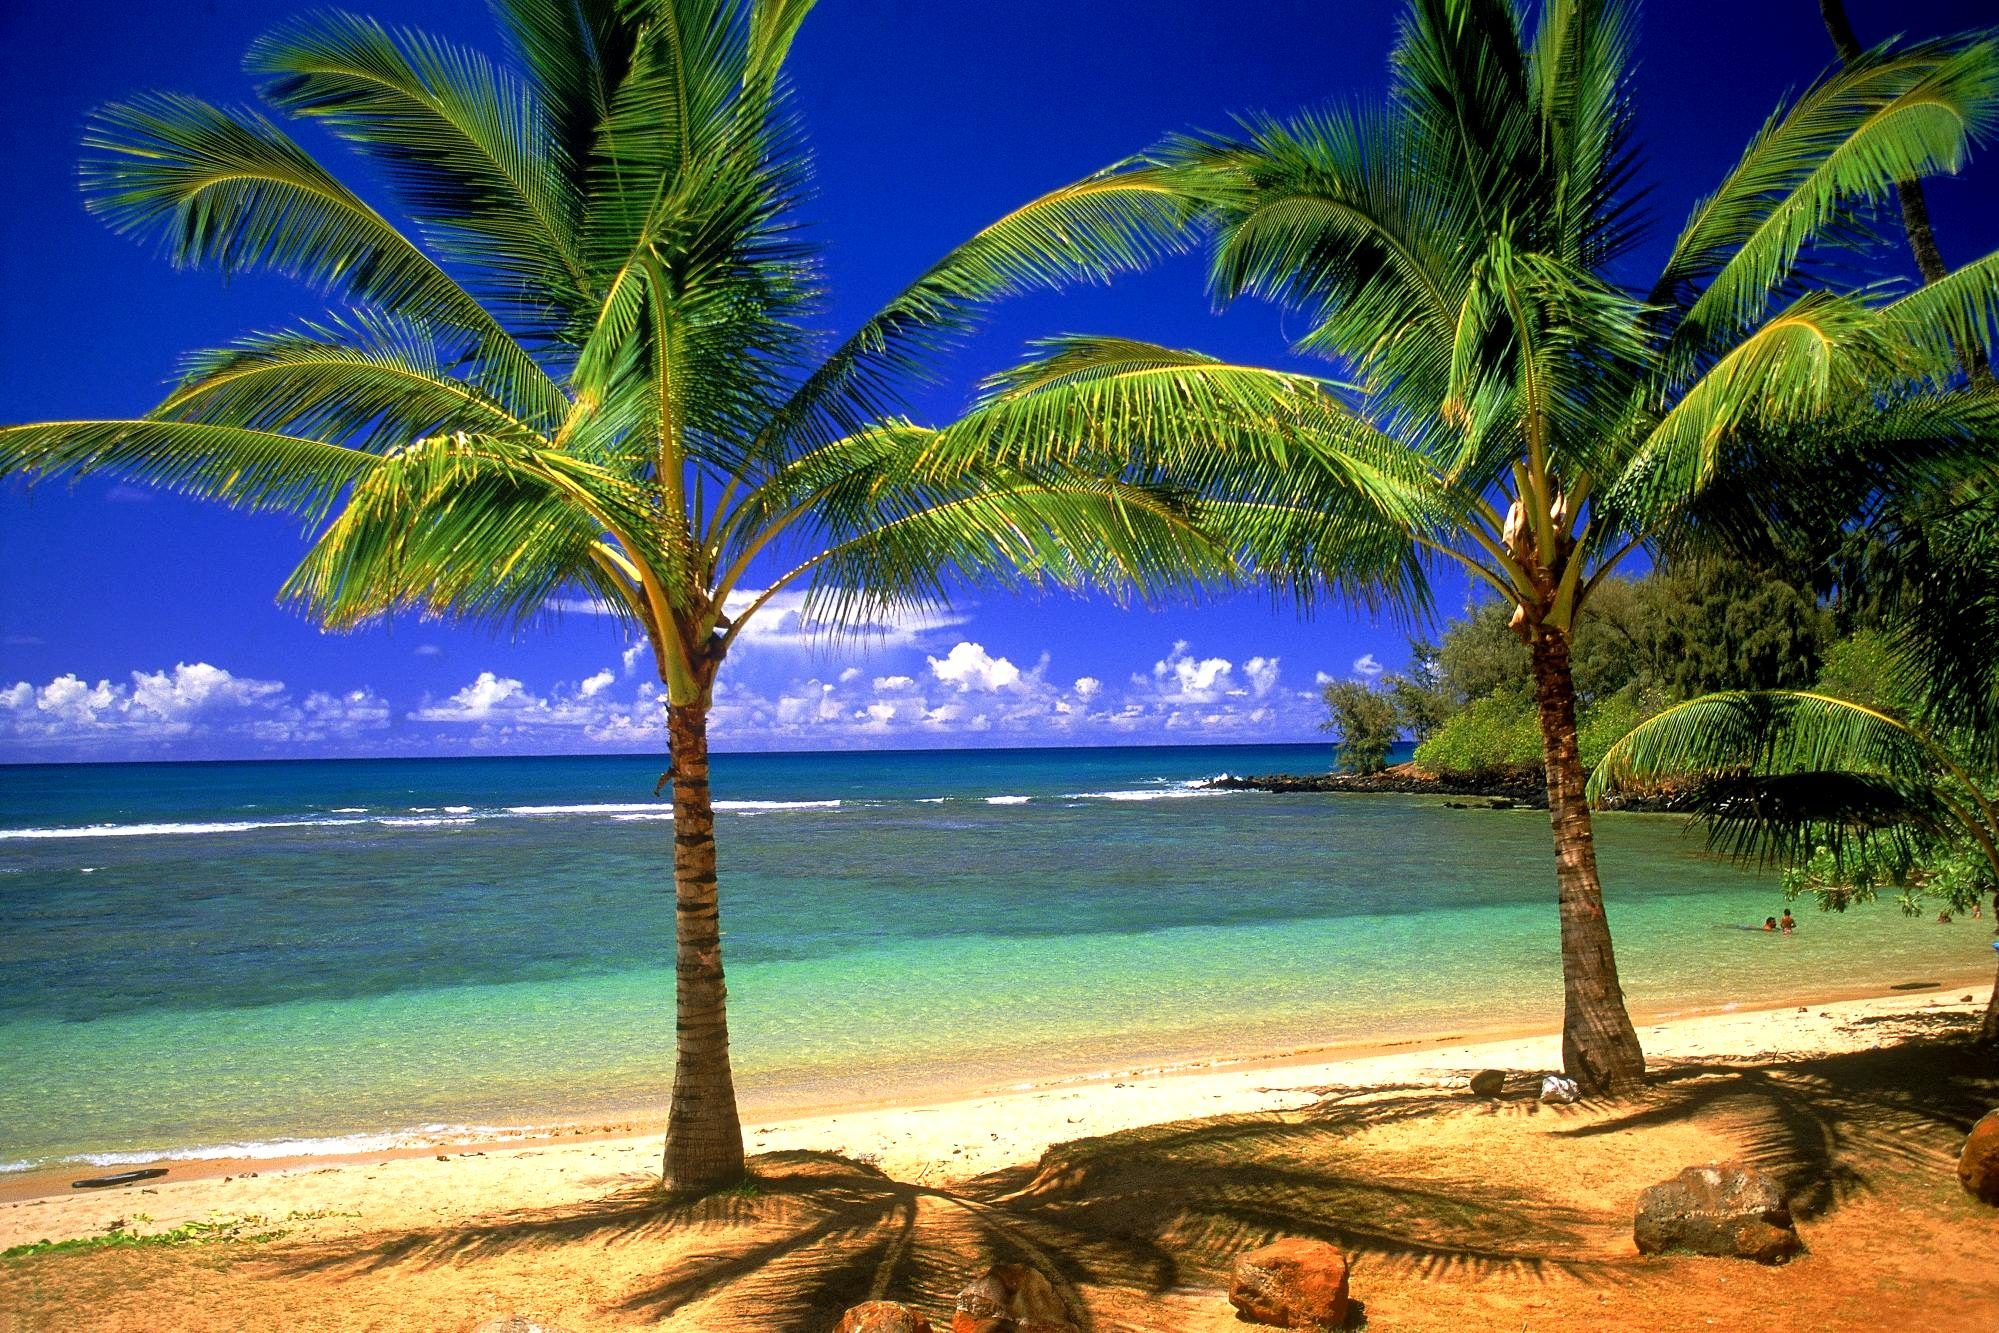 Beach HD Wallpapers 1920×1200 Beach Hd Wallpaper (45 Wallpapers) | Adorable  Wallpapers